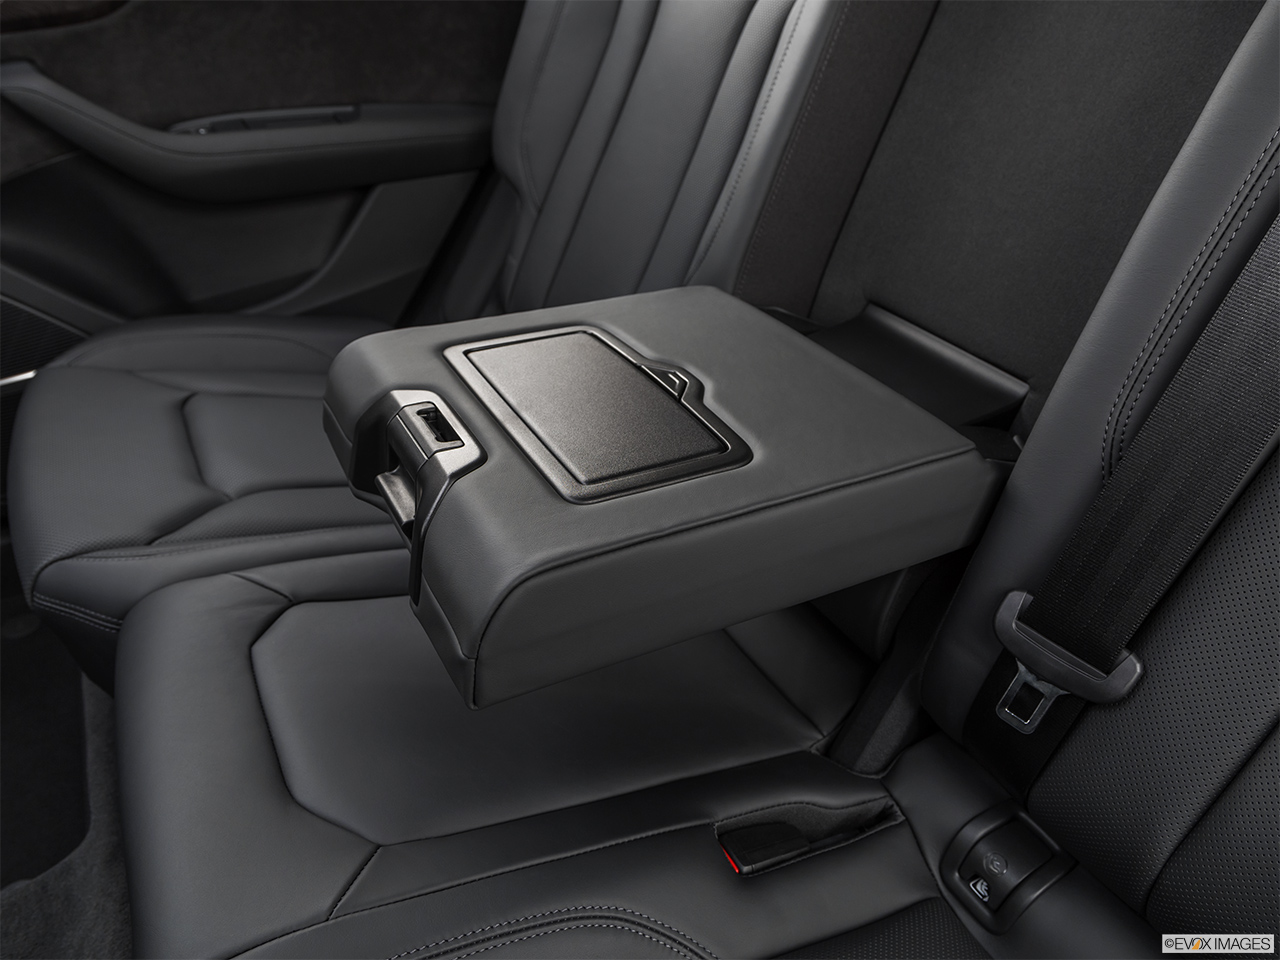 2019 Audi Q8 Prestige 3.0 TFSI Rear center console with closed lid from driver's side looking down.